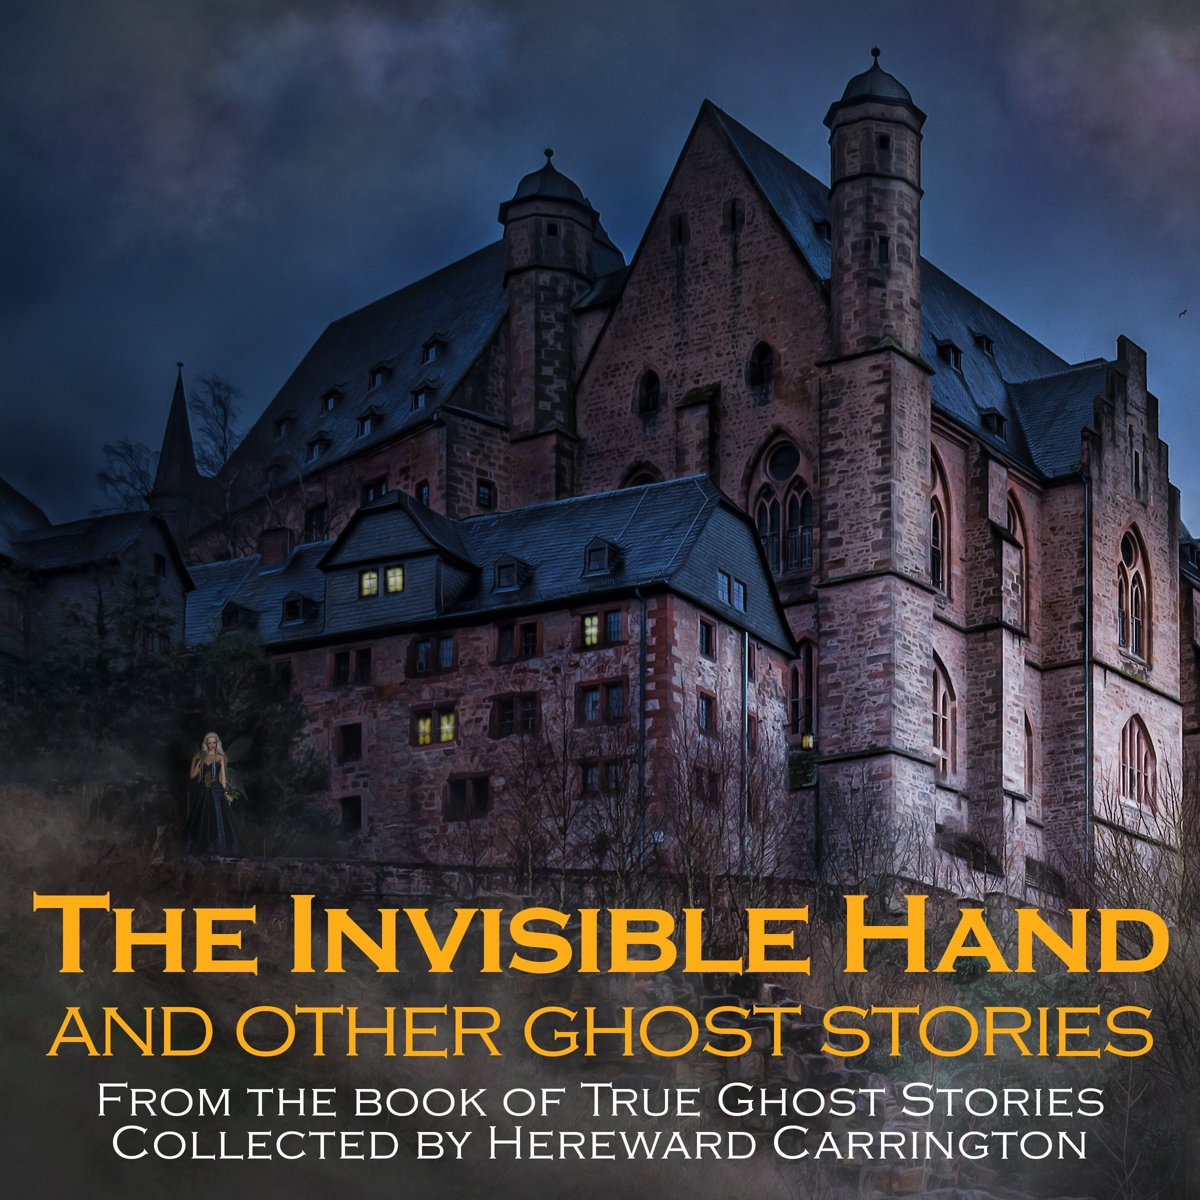 Invisible Hand and Other Ghost Stories, The